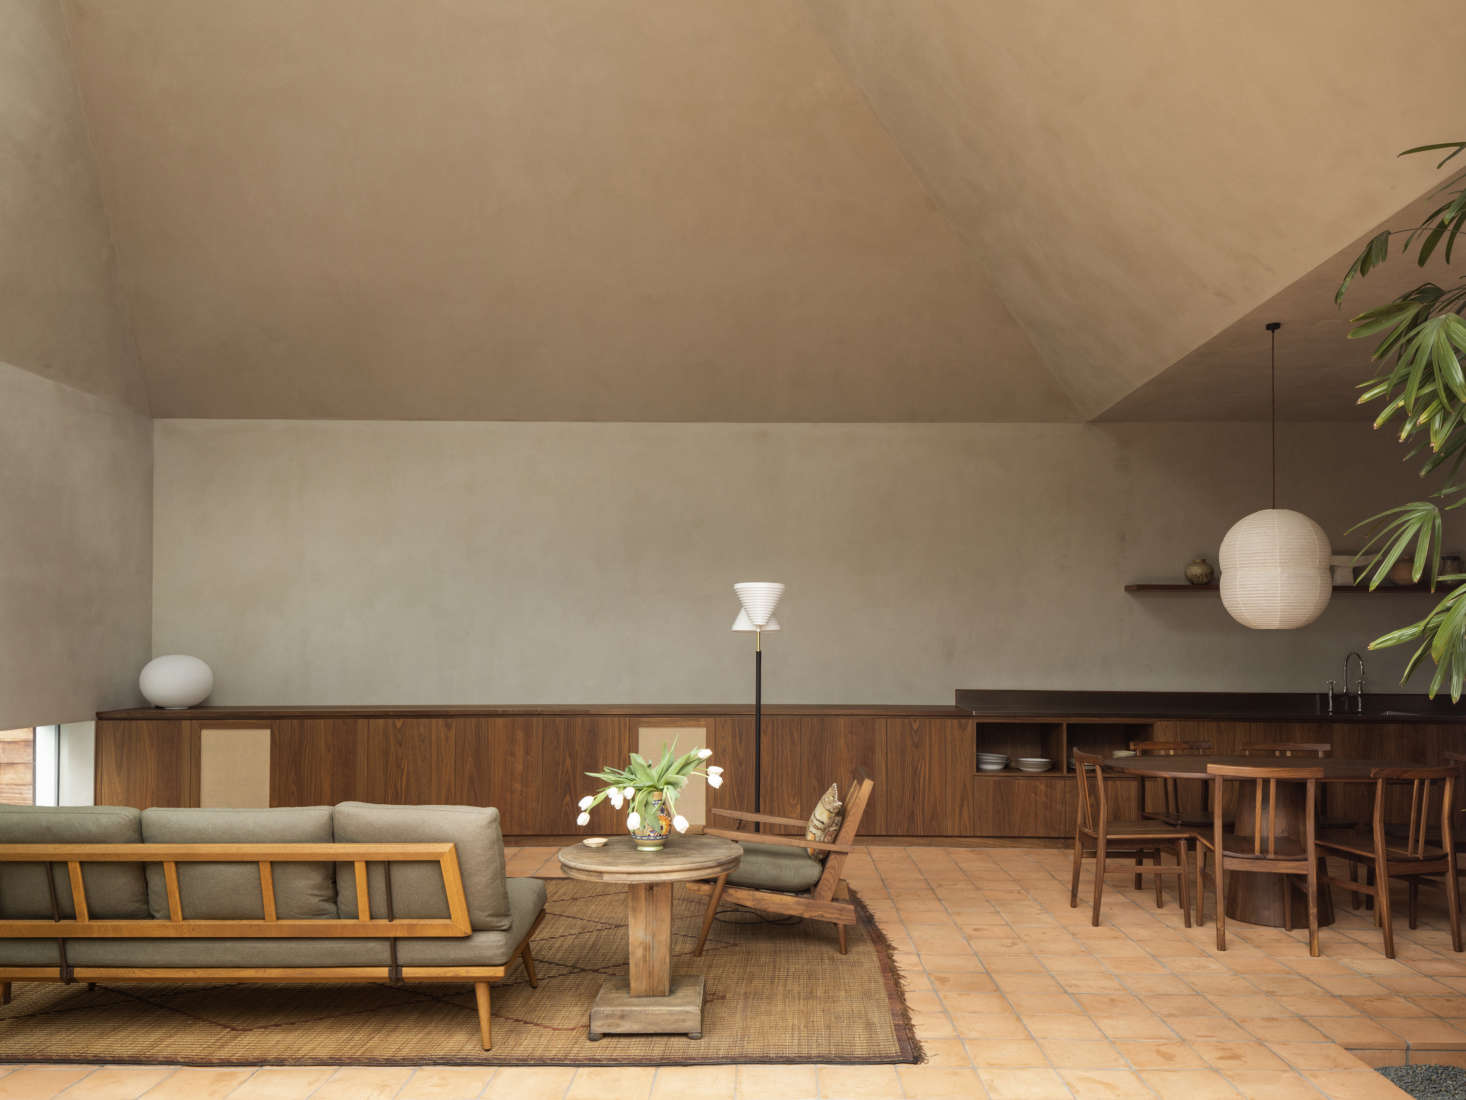 A wider view of the living room and open kitchen. Without a kitchen island, the architects note, the dining table becomes a central gathering space, connecting the two rooms as one.